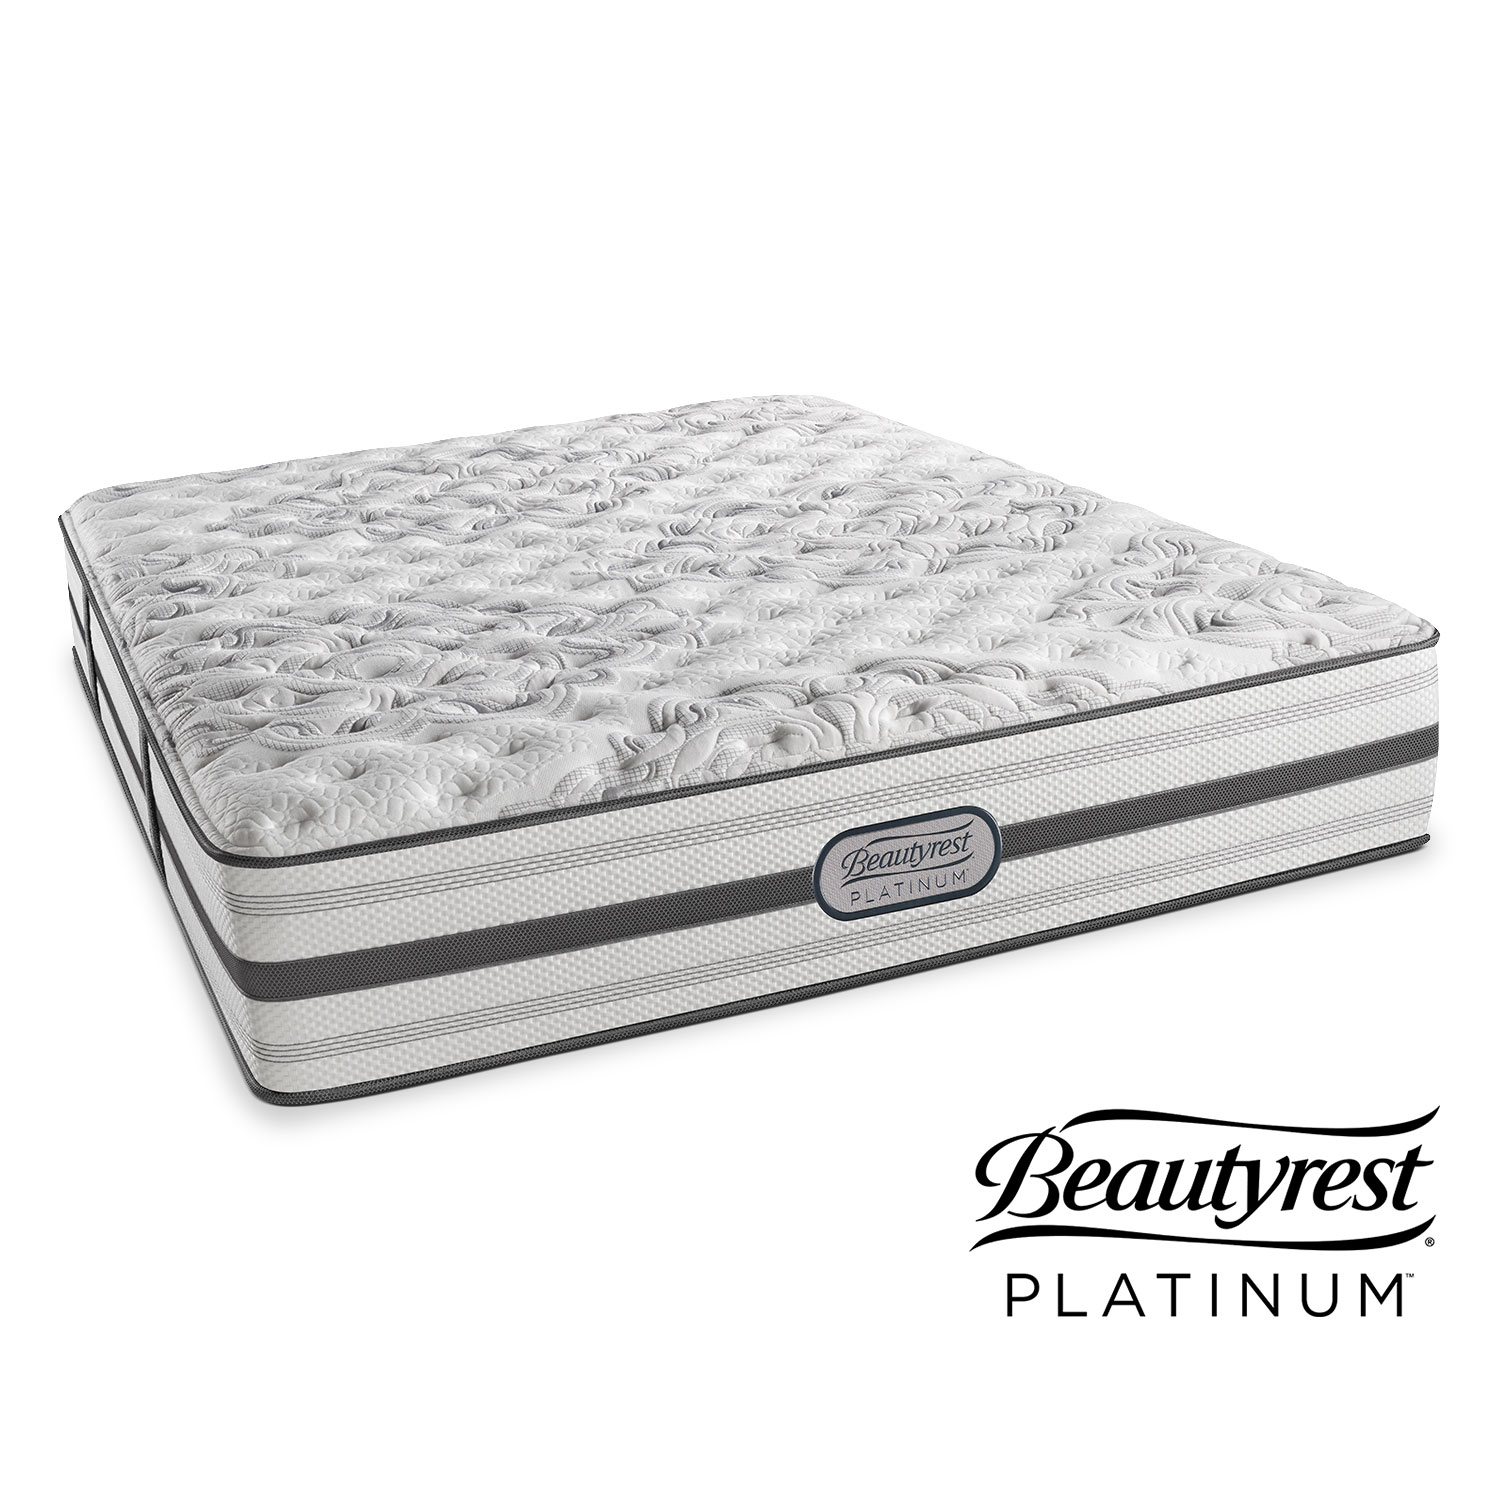 Mattresses and Bedding - Helena Twin Mattress